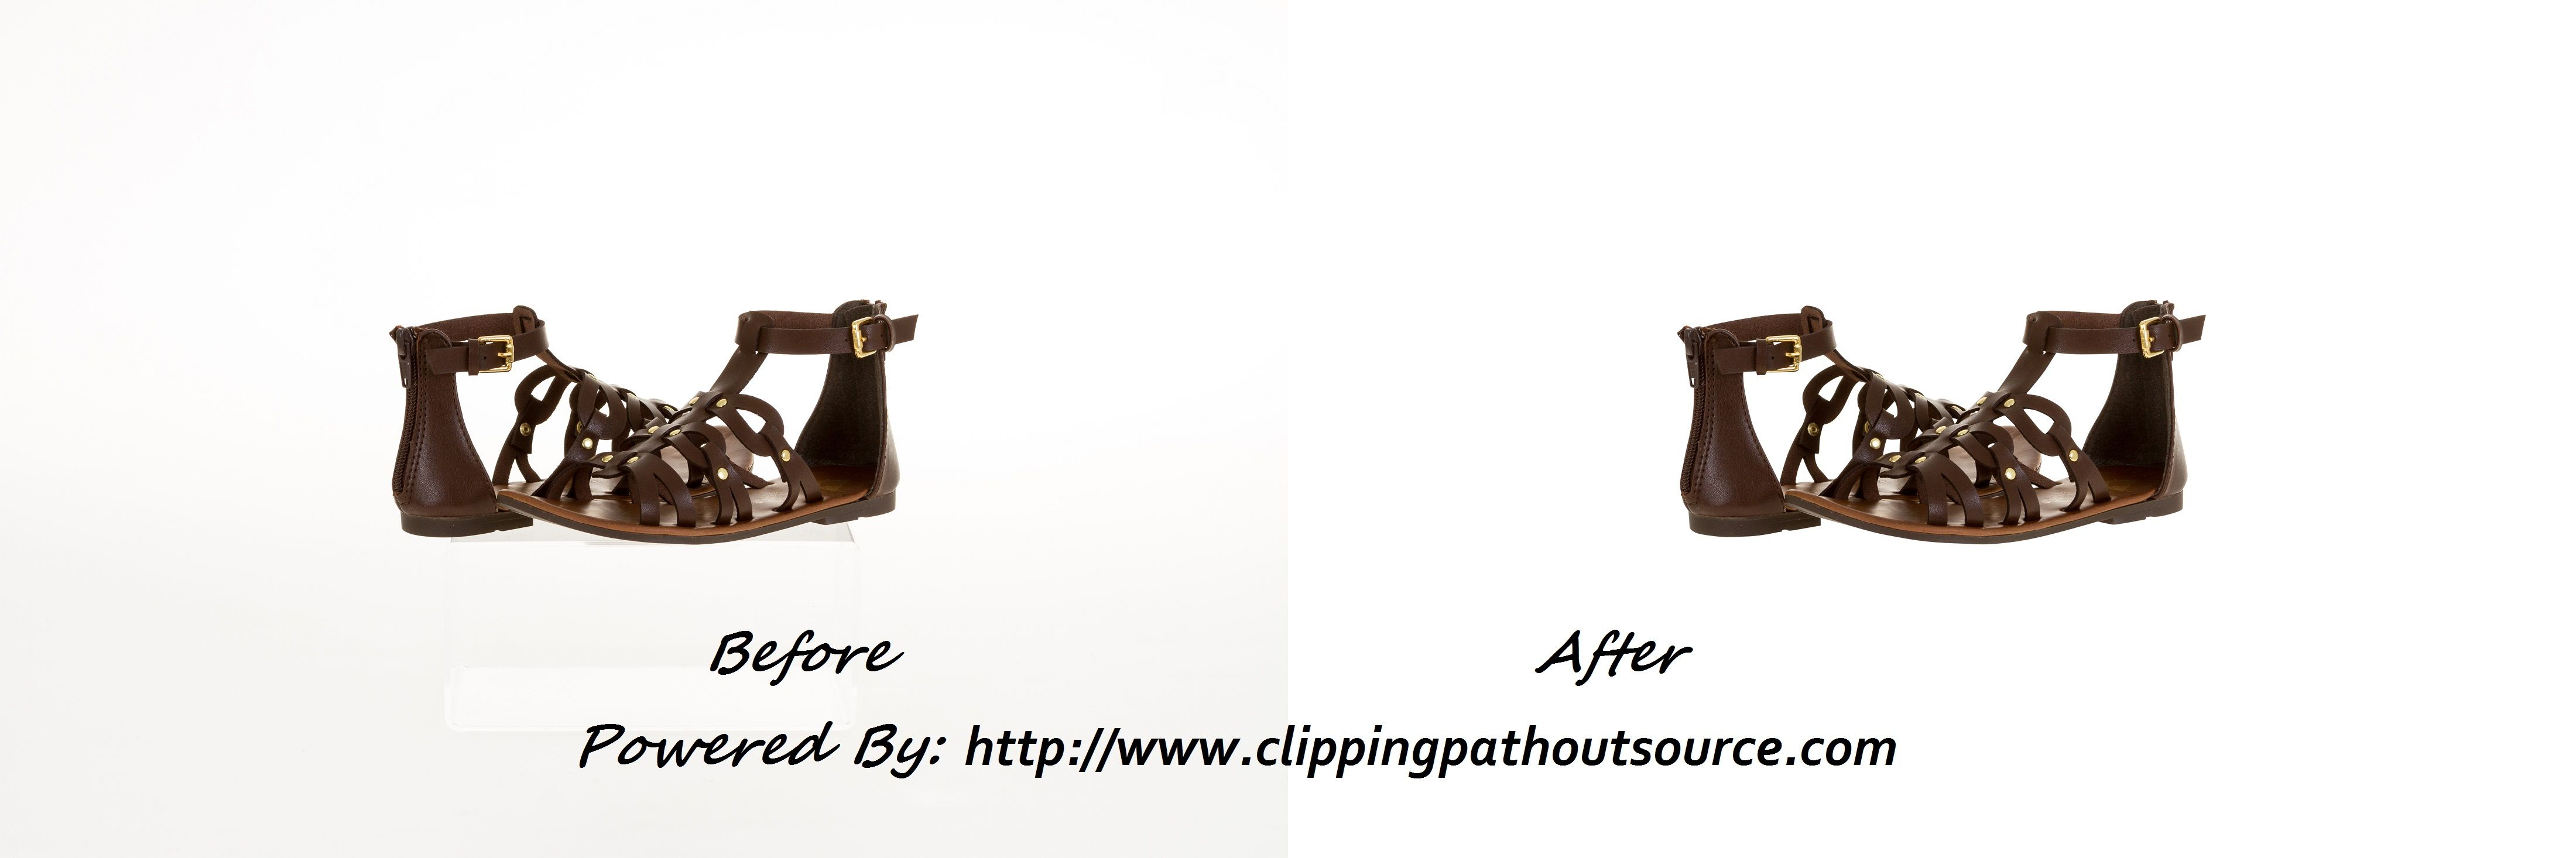 Clipping Service Image Masking Photo Editing Drop